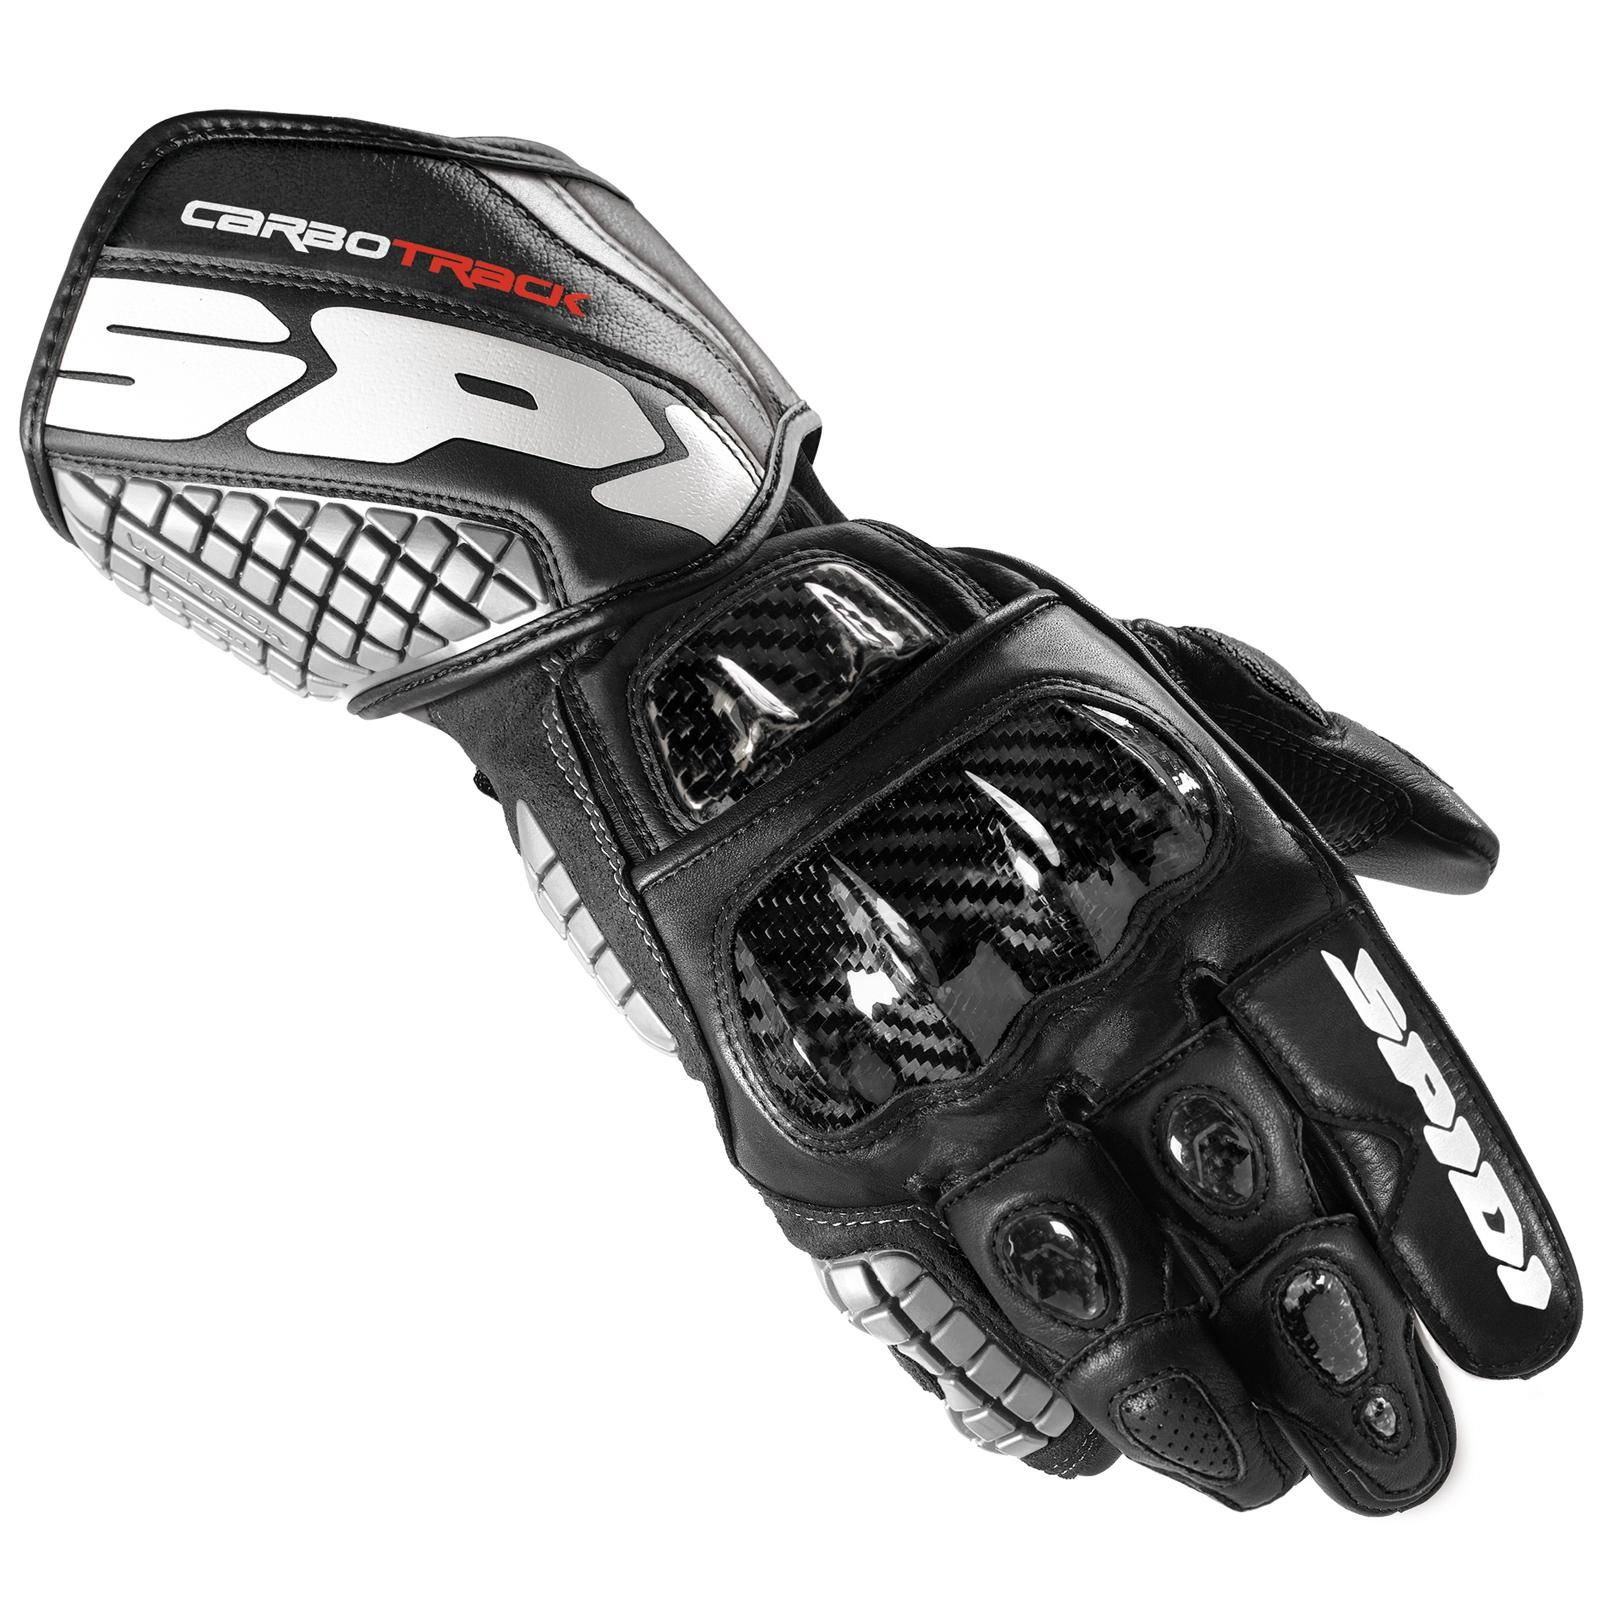 Black gloves races - Spidi Carbo Track Racing Glove Available In Black Color At Http Www